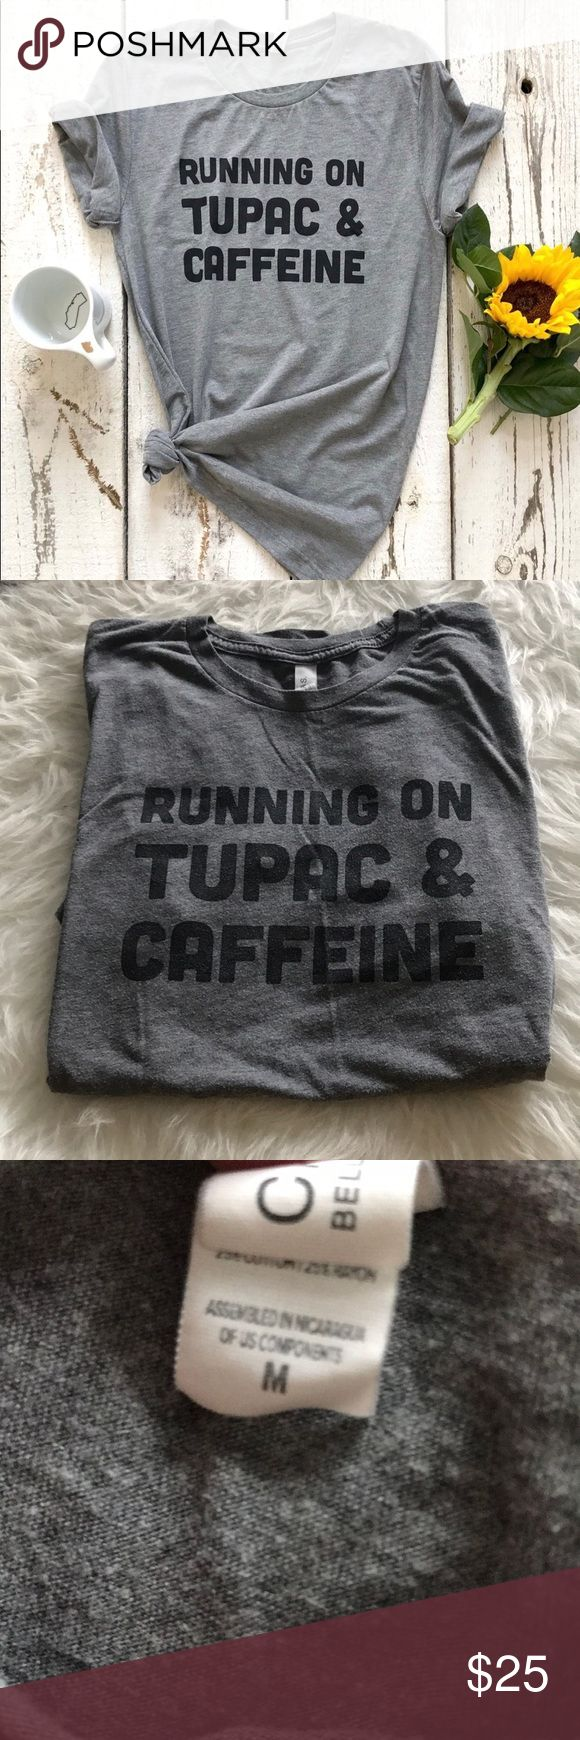 ☕️ Running on Tupac and Caffeine ☕️ SZ M Running on Tupac and caffeine T-Shirt SZ M   So comfy! 50% Polyester 25% Cotton 25% Rayon    Gently used by no signs of wear   From Saturday Morning Pancakes   Items will arrive as described ✔️ Items will ship next business day 💌📪 Make me an offer 🗣🙋🏼   Check out other listings in my closet and bundle for the best price 🎯 Saturday Morning Pancakes Tops Tees - Short Sleeve